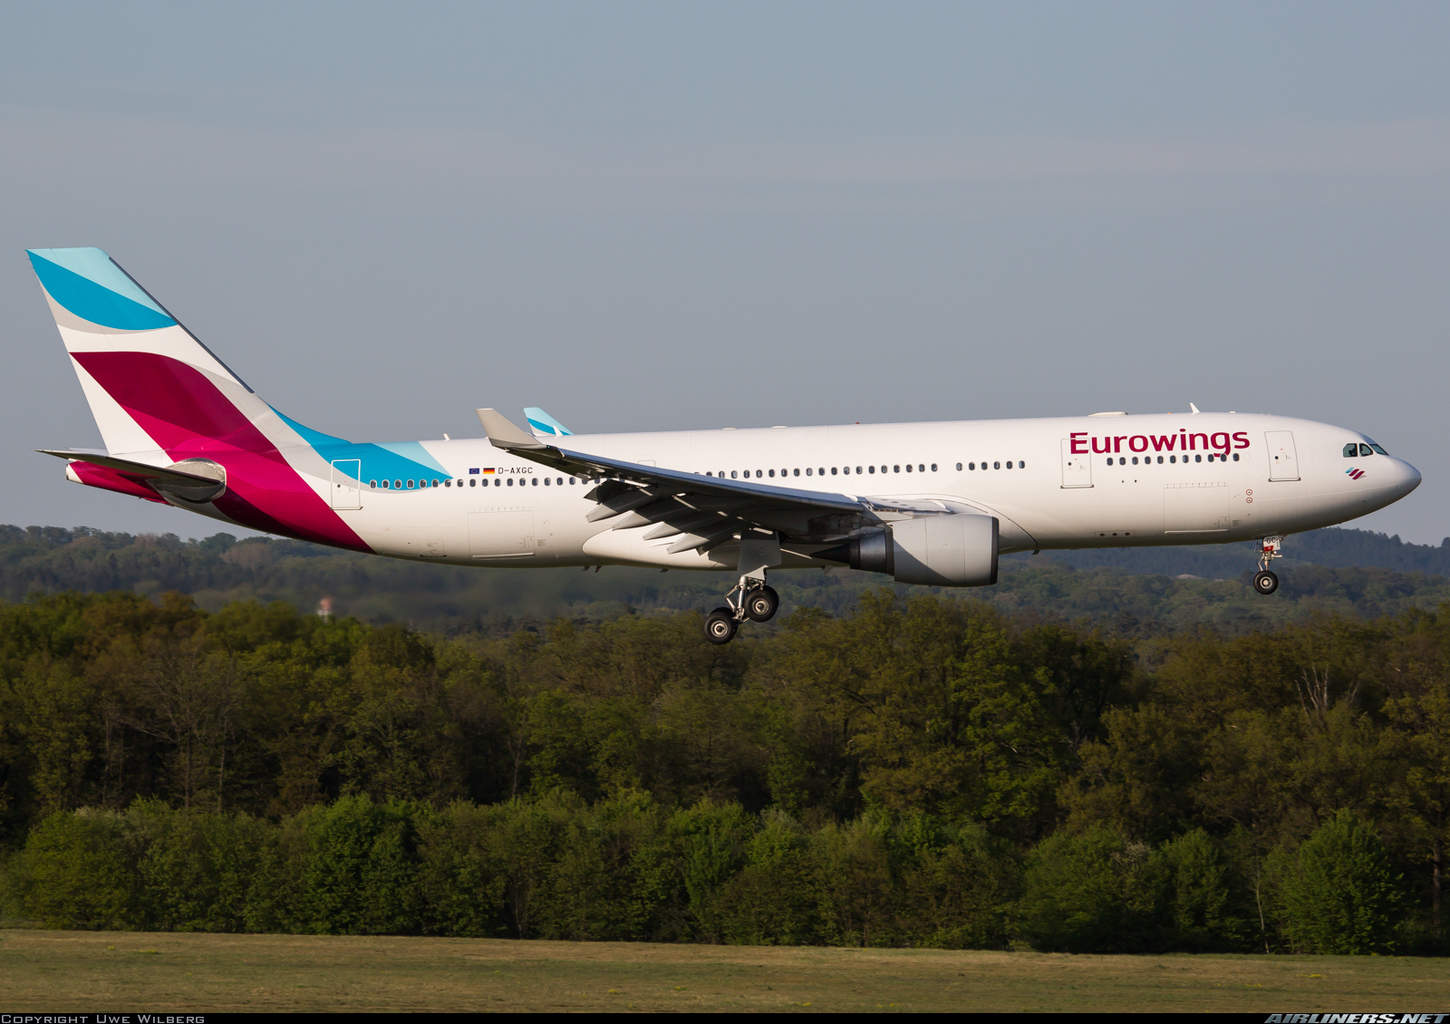 Lufthansa looking into purchasing routes from Air Berlin for Eurowings